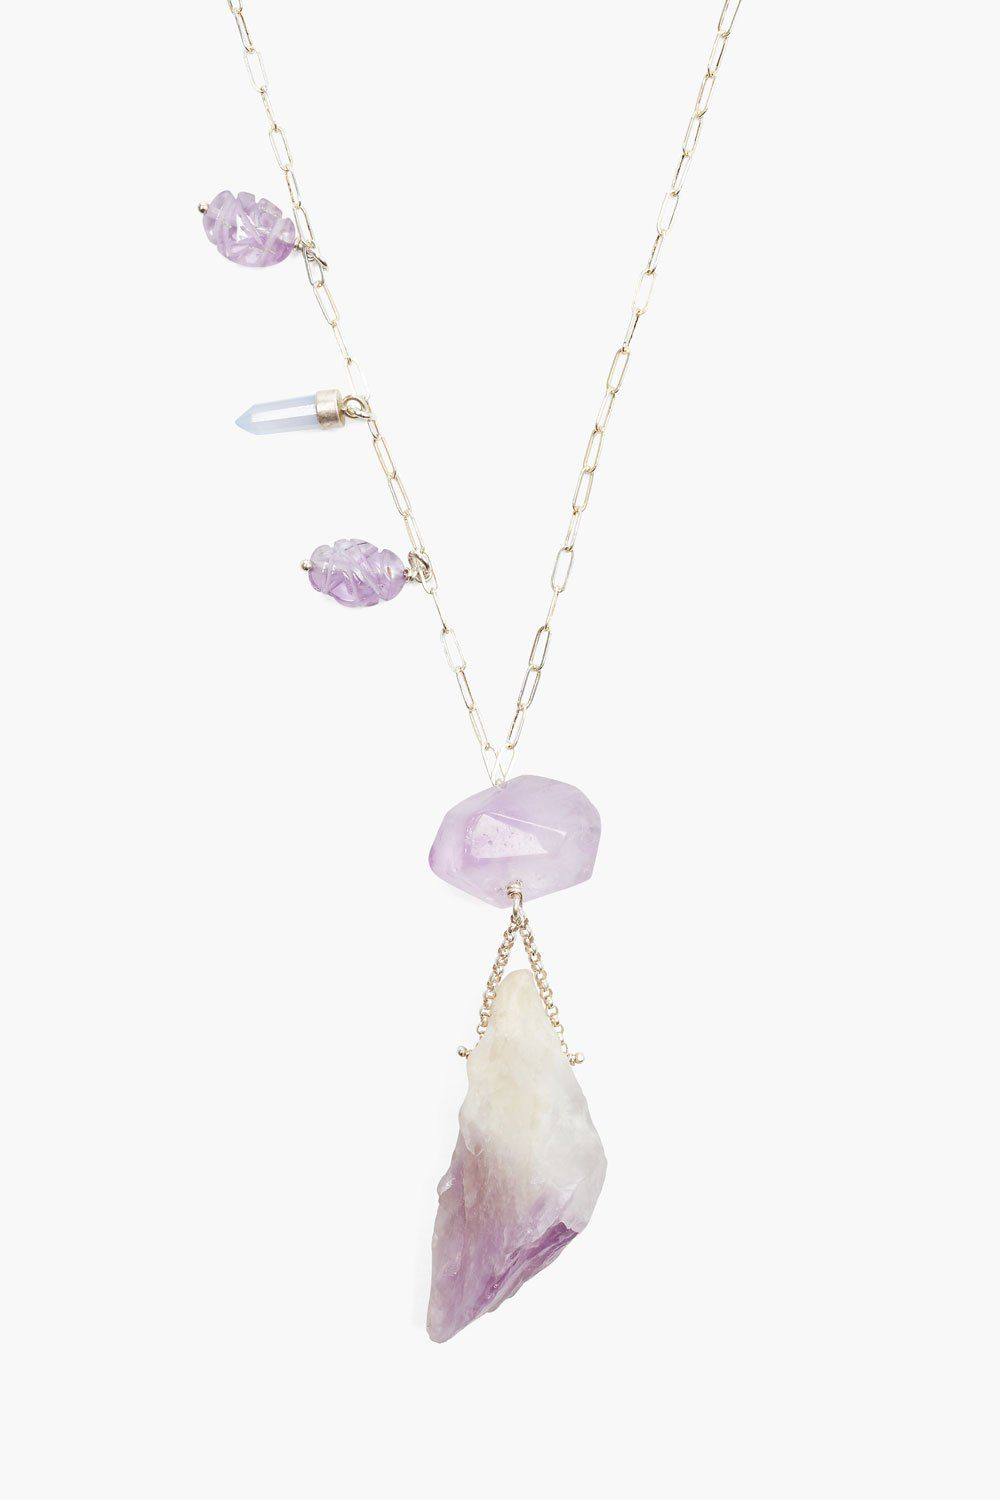 Amethyst Healing Stone Pendant Necklace